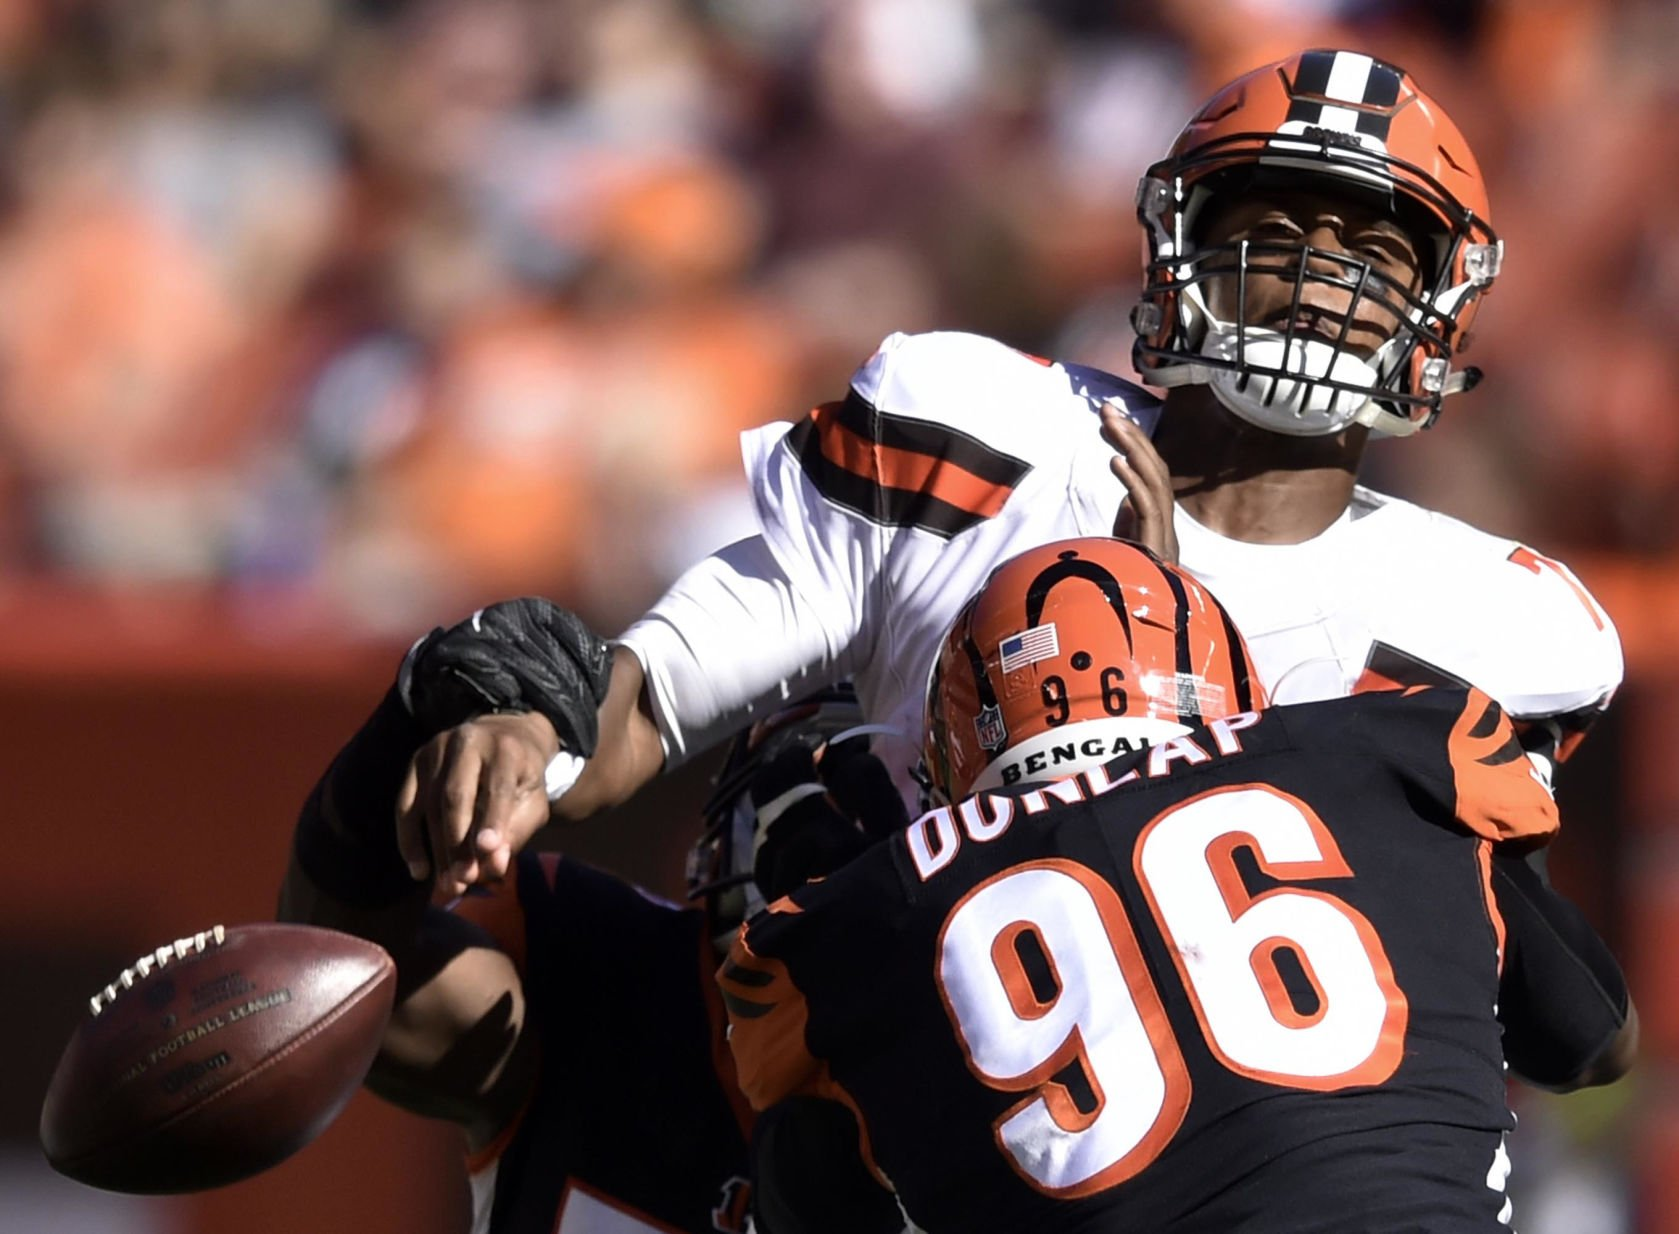 No. 1 draft pick Myles Garrett set to make National Football League debut